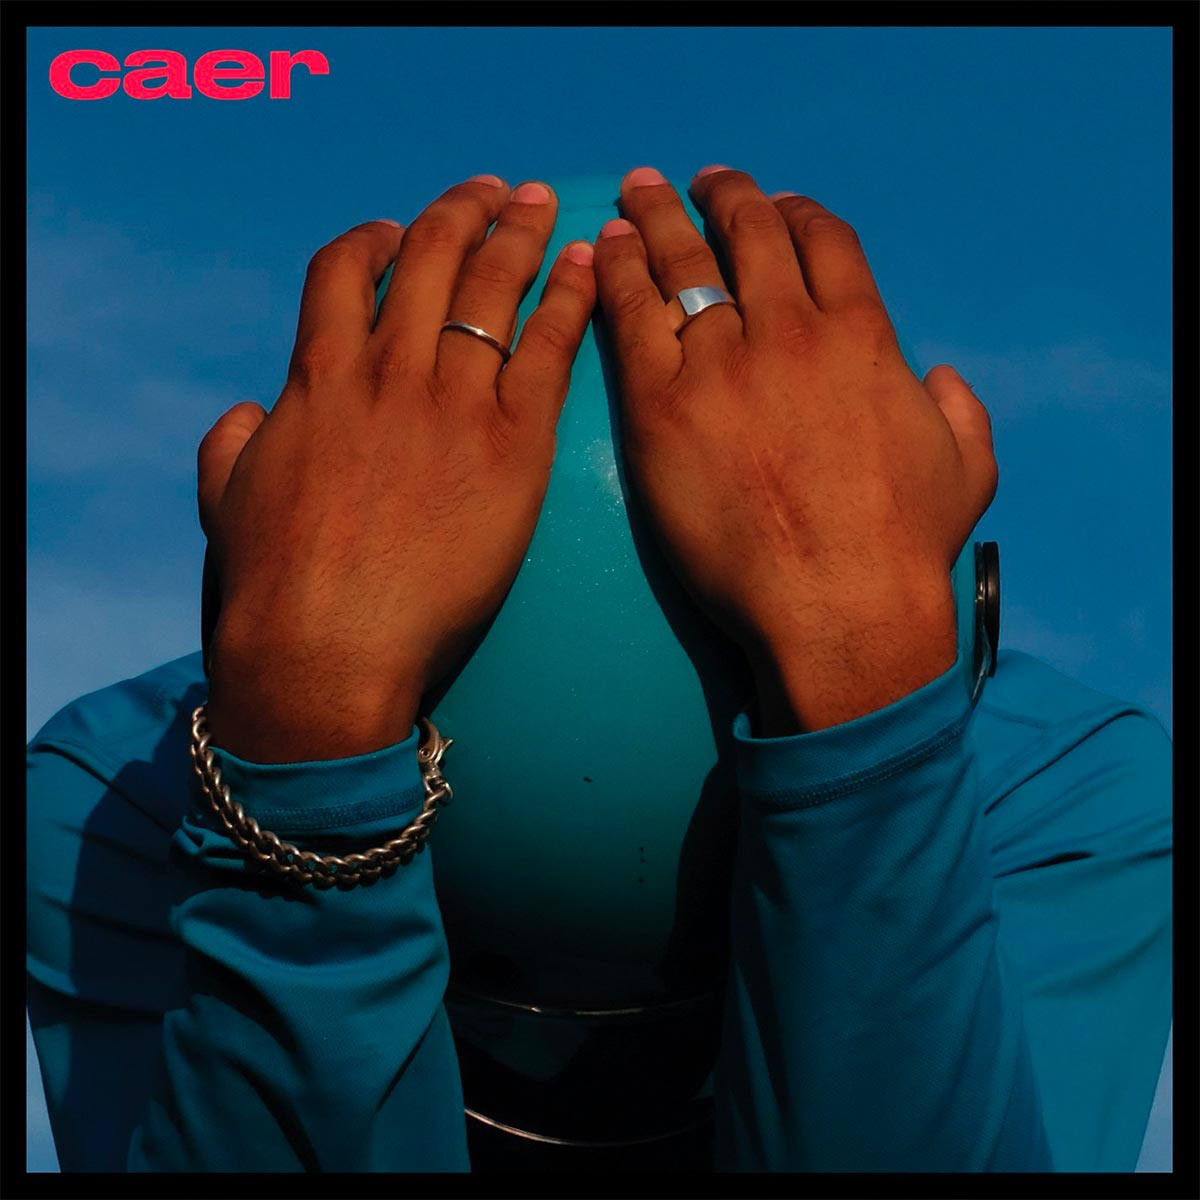 Twin Shadow - Caer - It's hard to top Twin Shadow's 2010 release of Forget, but it is no difficult task to eclipse his hallow Eclipse from 2015. Caer is a great middle ground between the Joy Division minimalism of Forget and the power-ballad pipe-dreams of Eclipse and it's an incredible listen all the way through. With collaborations with pop-sister-goddesses/Taylor Swift and Paul Thomas Anderson BFFs, Haim and Rainsford, George Lewis Jr. makes a hella fun record through and through.